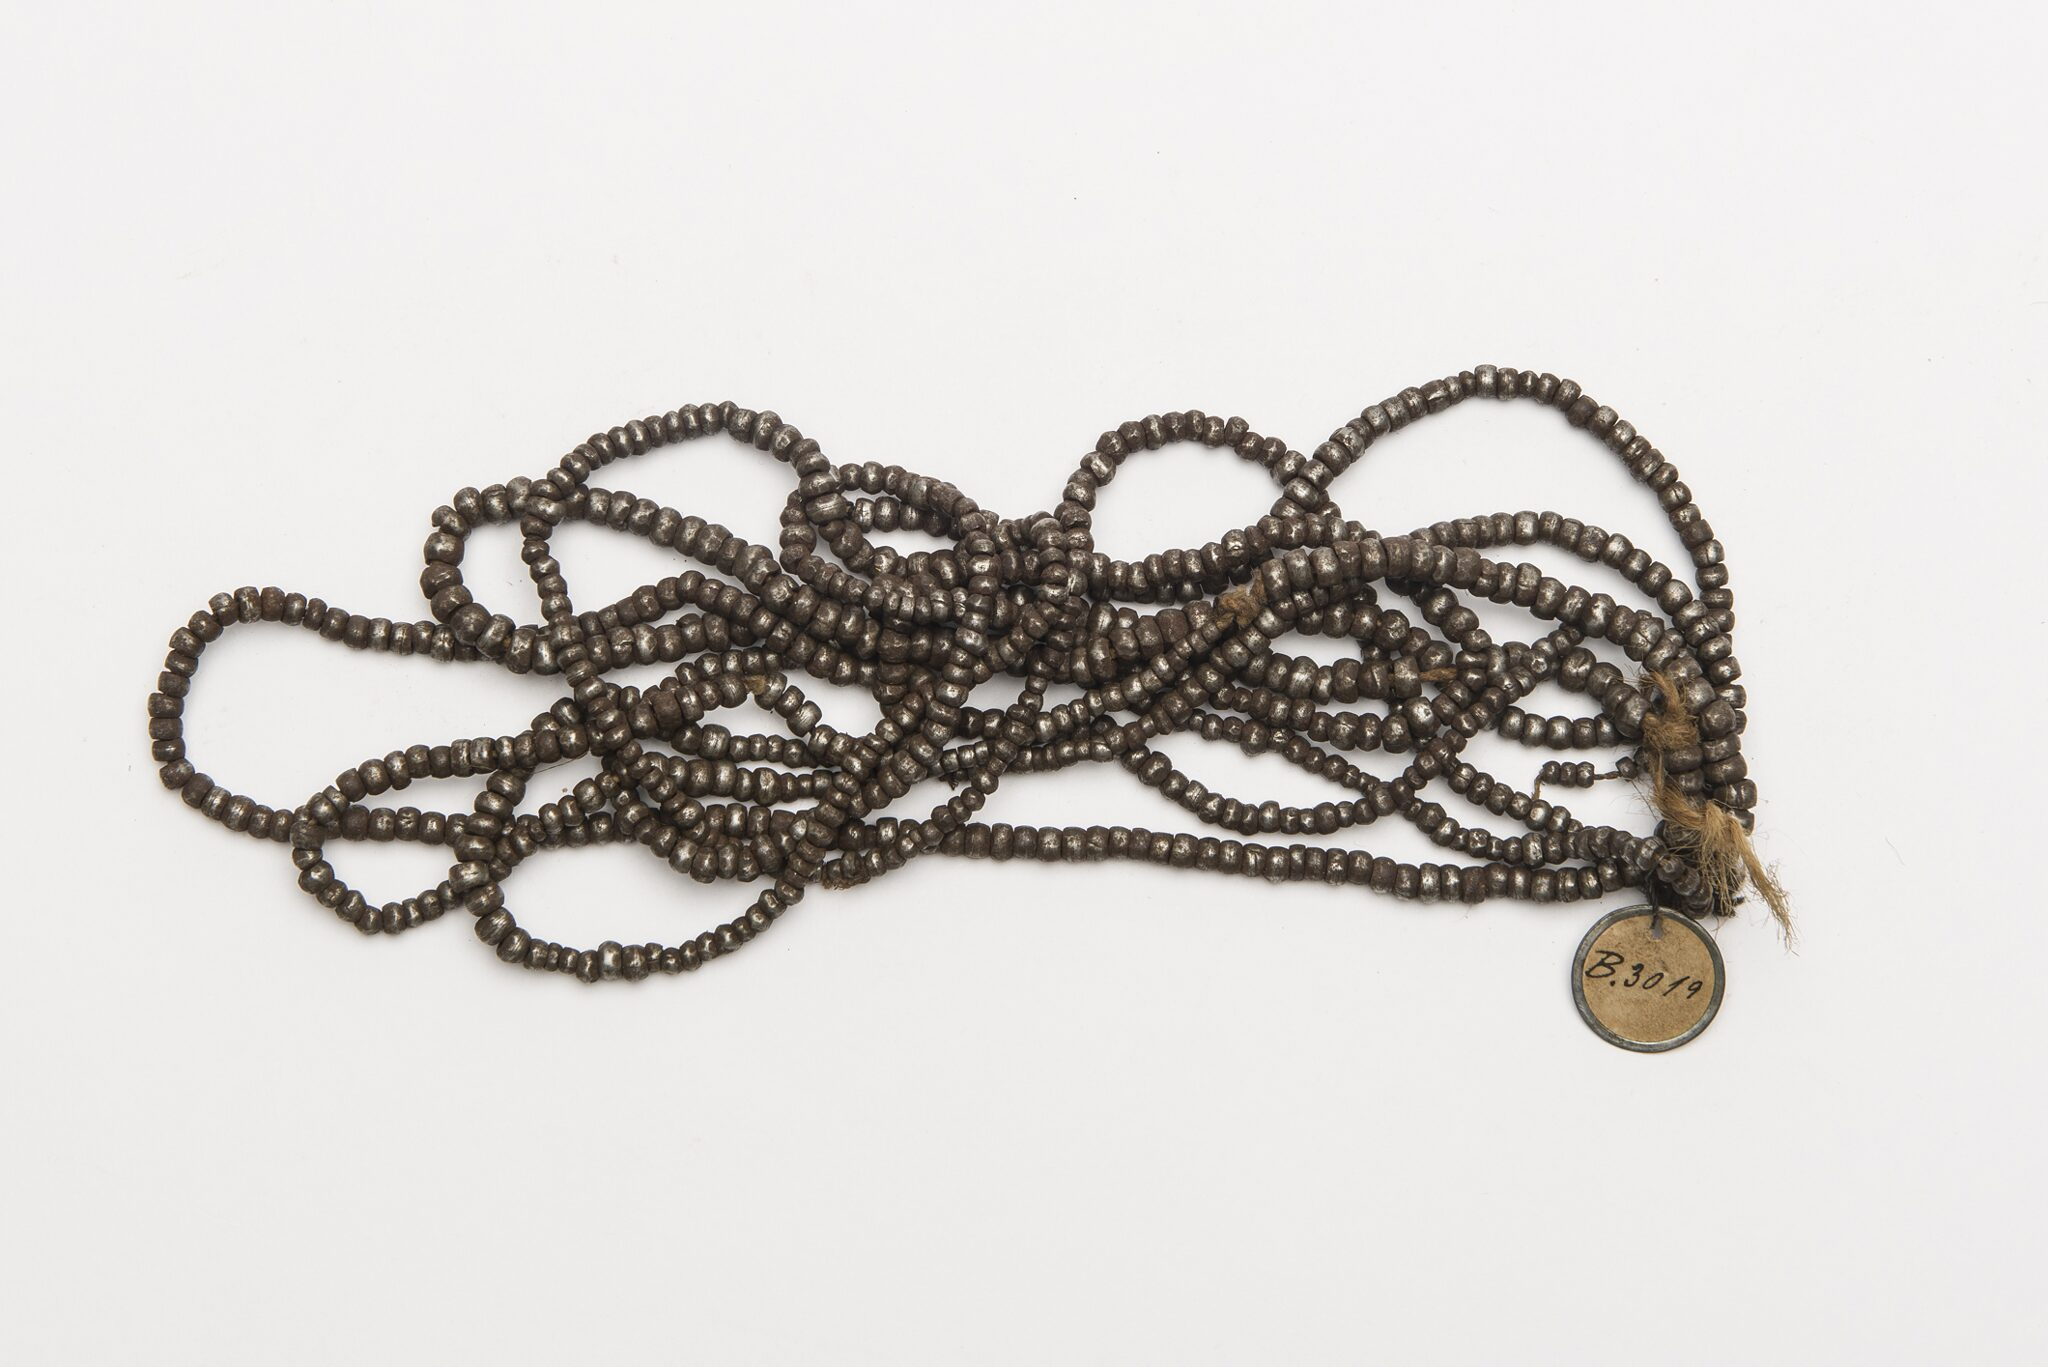 Iron Beads, Hälbich Collection